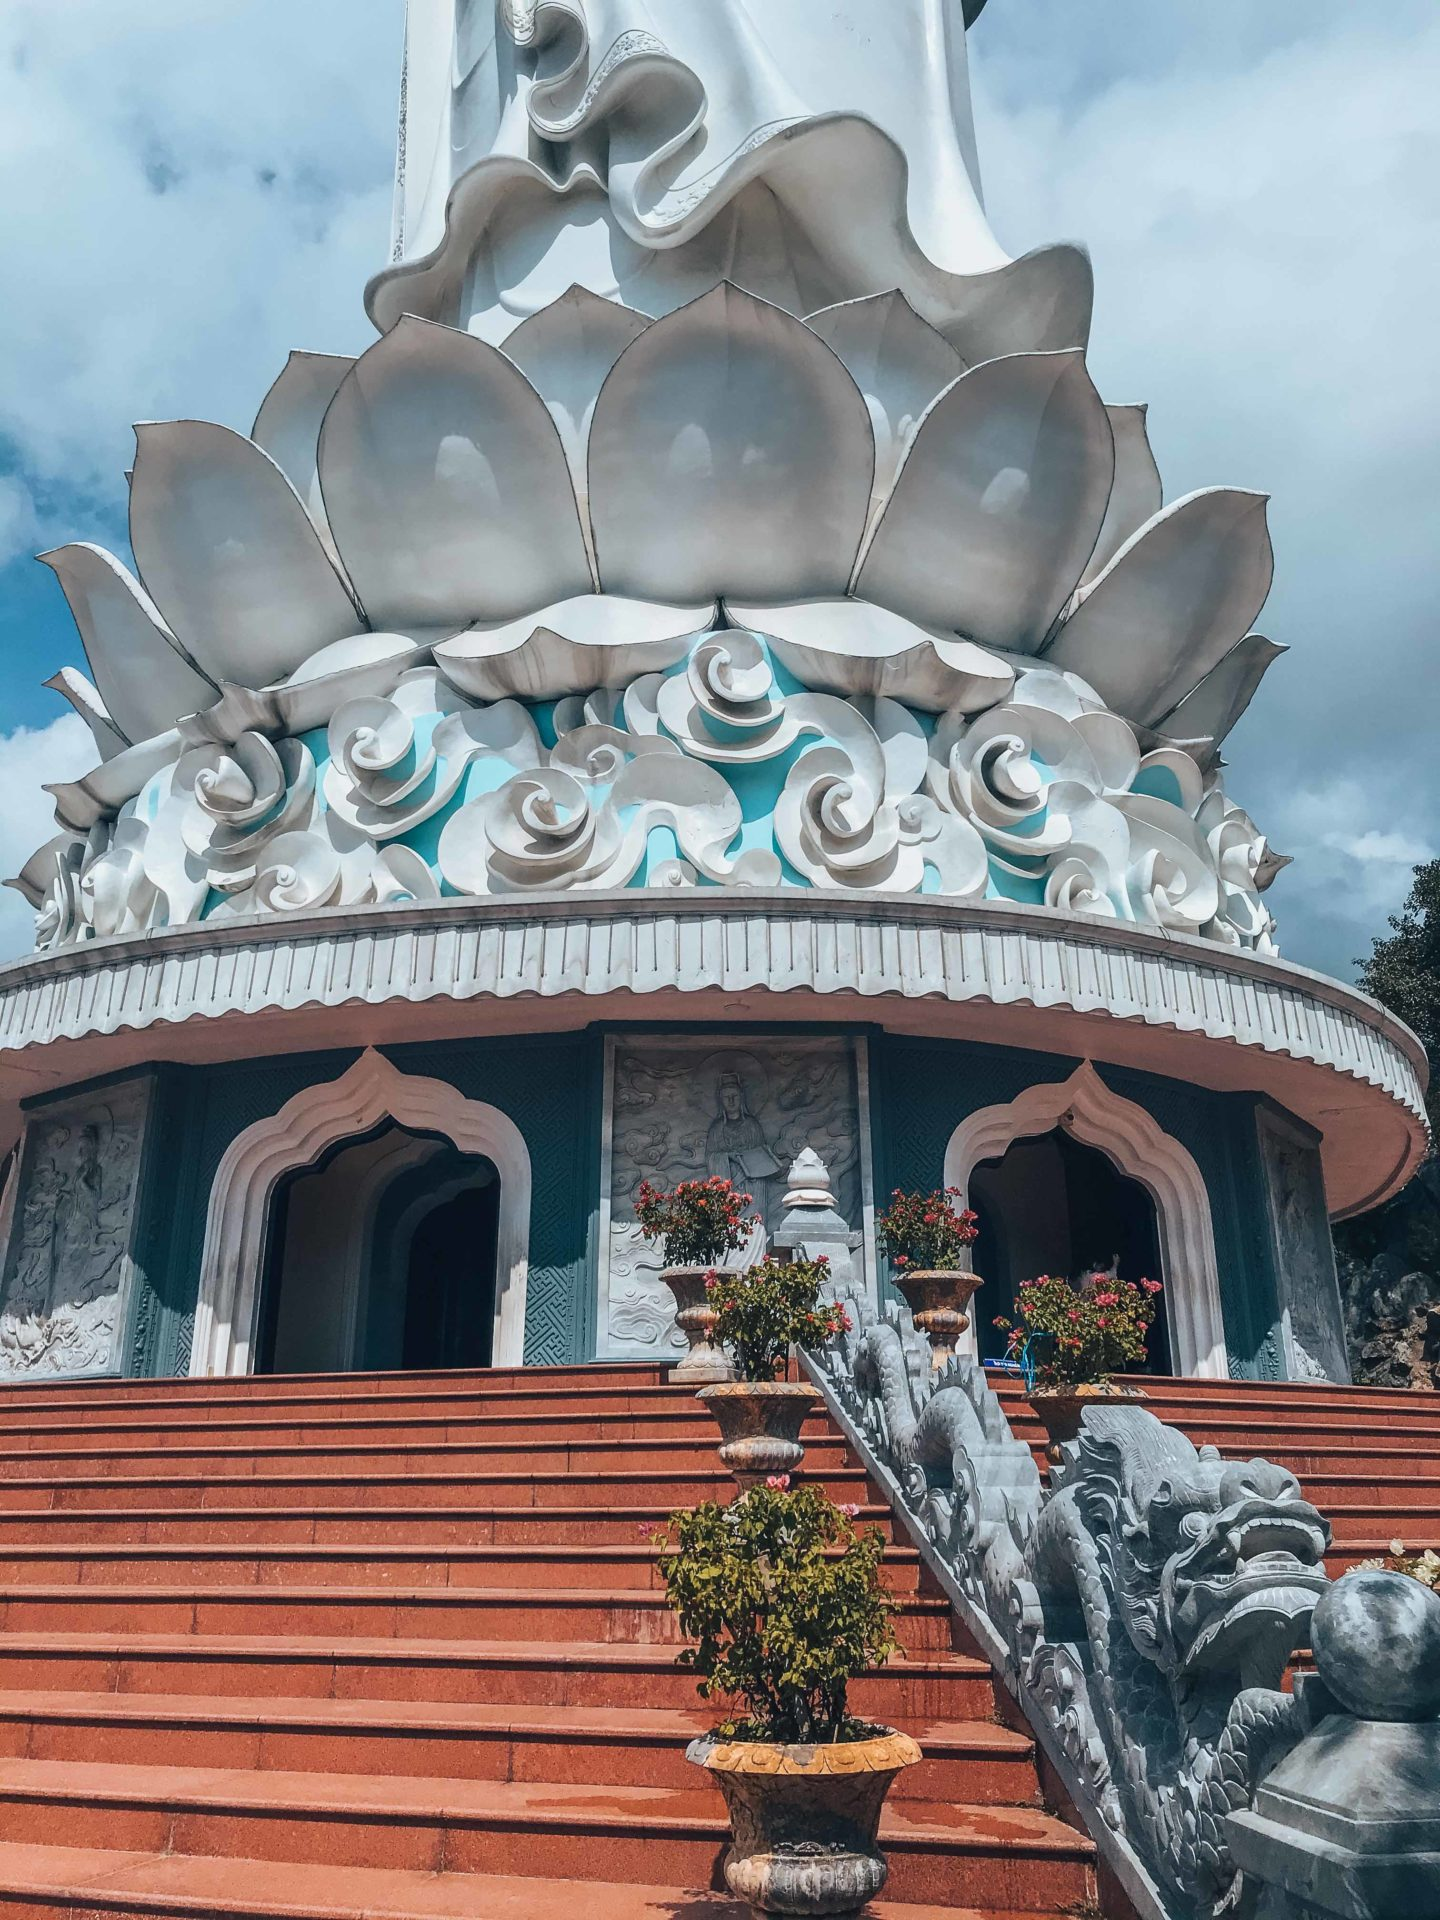 Architecture details of the lotus flower temple Lady Buddha stands on, in Da Nang